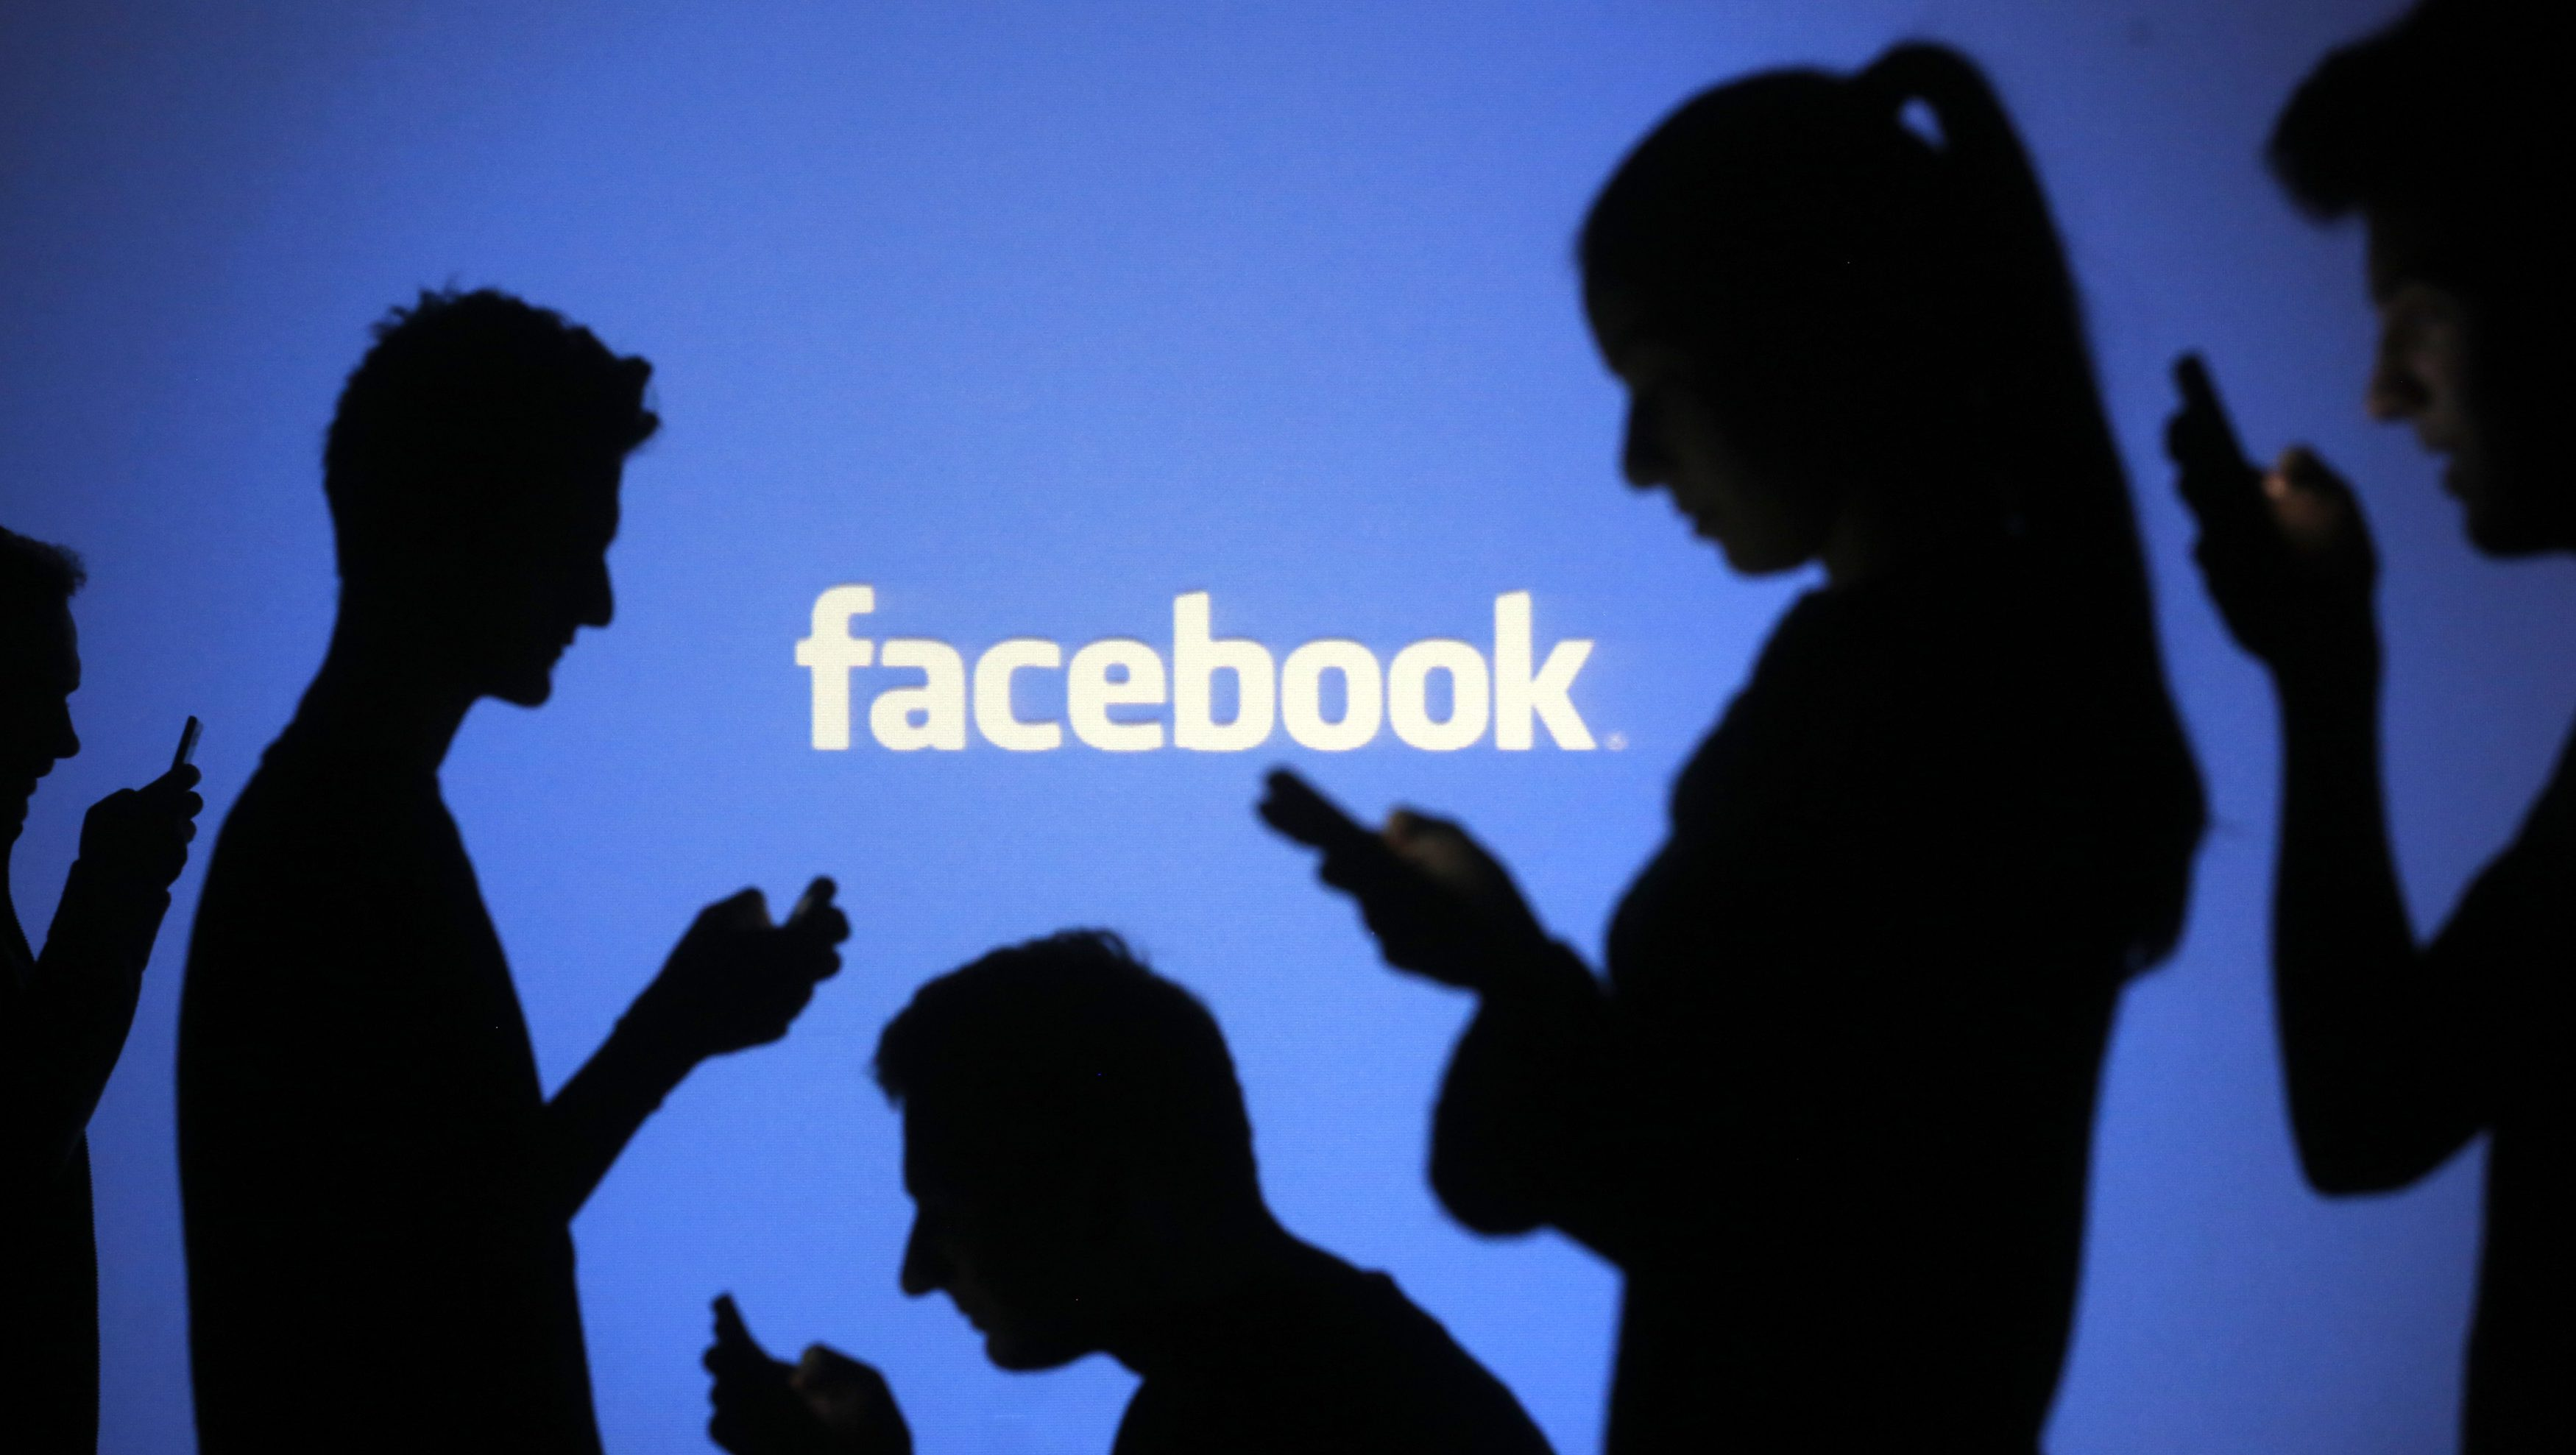 People are silhouetted as they pose with mobile devices in front of a screen projected with a Facebook logo, in this picture illustration taken in Zenica October 29, 2014. Facebook Inc warned on Tuesday of a dramatic increase in spending in 2015 and projected a slowdown in revenue growth this quarter, slicing a tenth off its market value. Facebook shares fell 7.7 percent in premarket trading the day after the social network announced an increase in spending in 2015 and projected a slowdown in revenue growth this quarter.